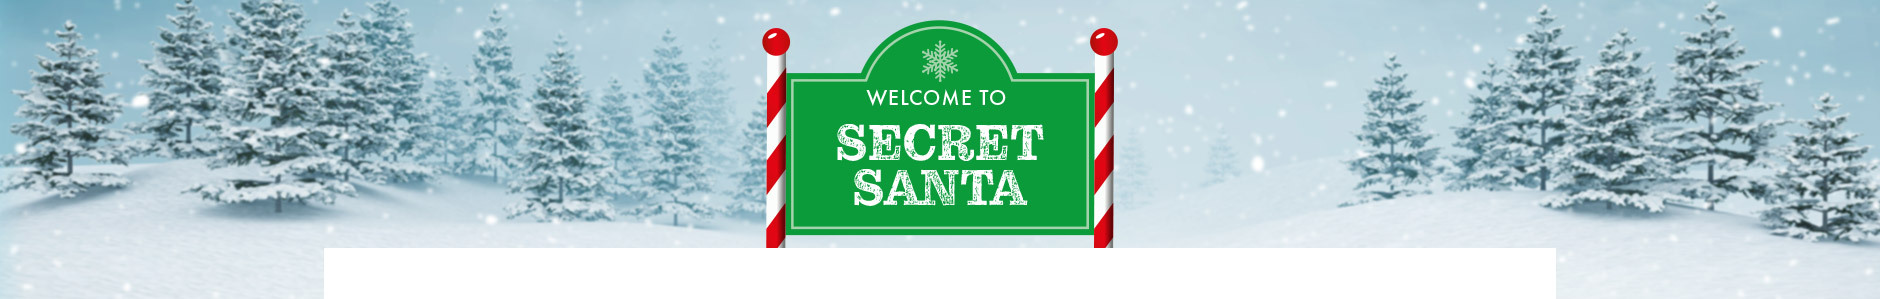 Check out our hilarious and meaningful secret santa gift ideas, perfect for the office secret santa